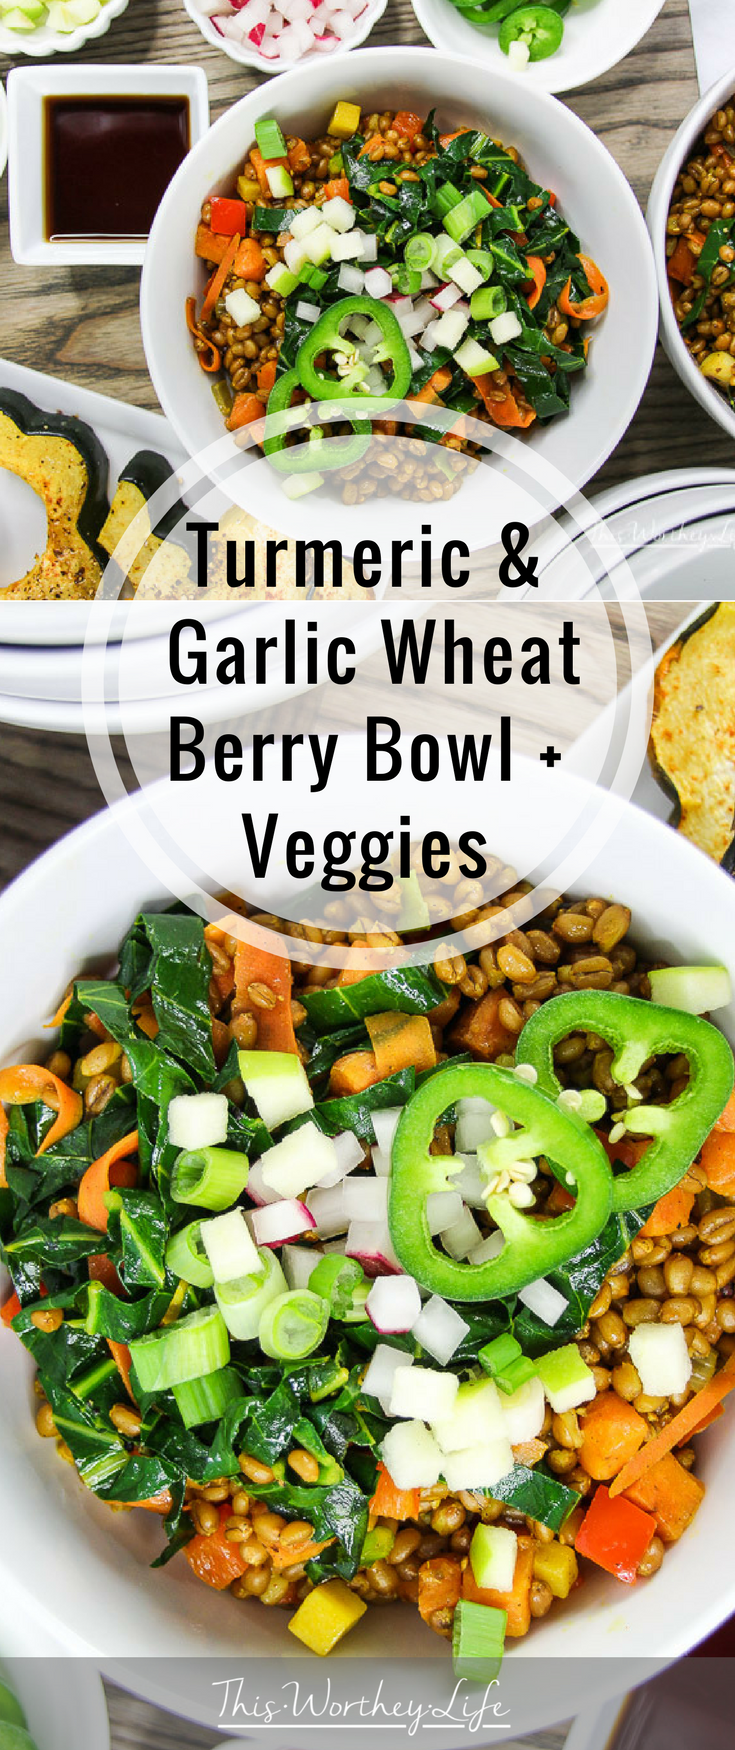 This vegetarian bowl is a healthy, delicious grain recipe that is also hearty and will have you coming back for seconds. We made the wheatberry in the Instant Pot and it turned out amazing. Our Turmeric & Garlic Wheat Berry Bowl + Veggies recipe is one to add to your list of healthy recipes to try this year!